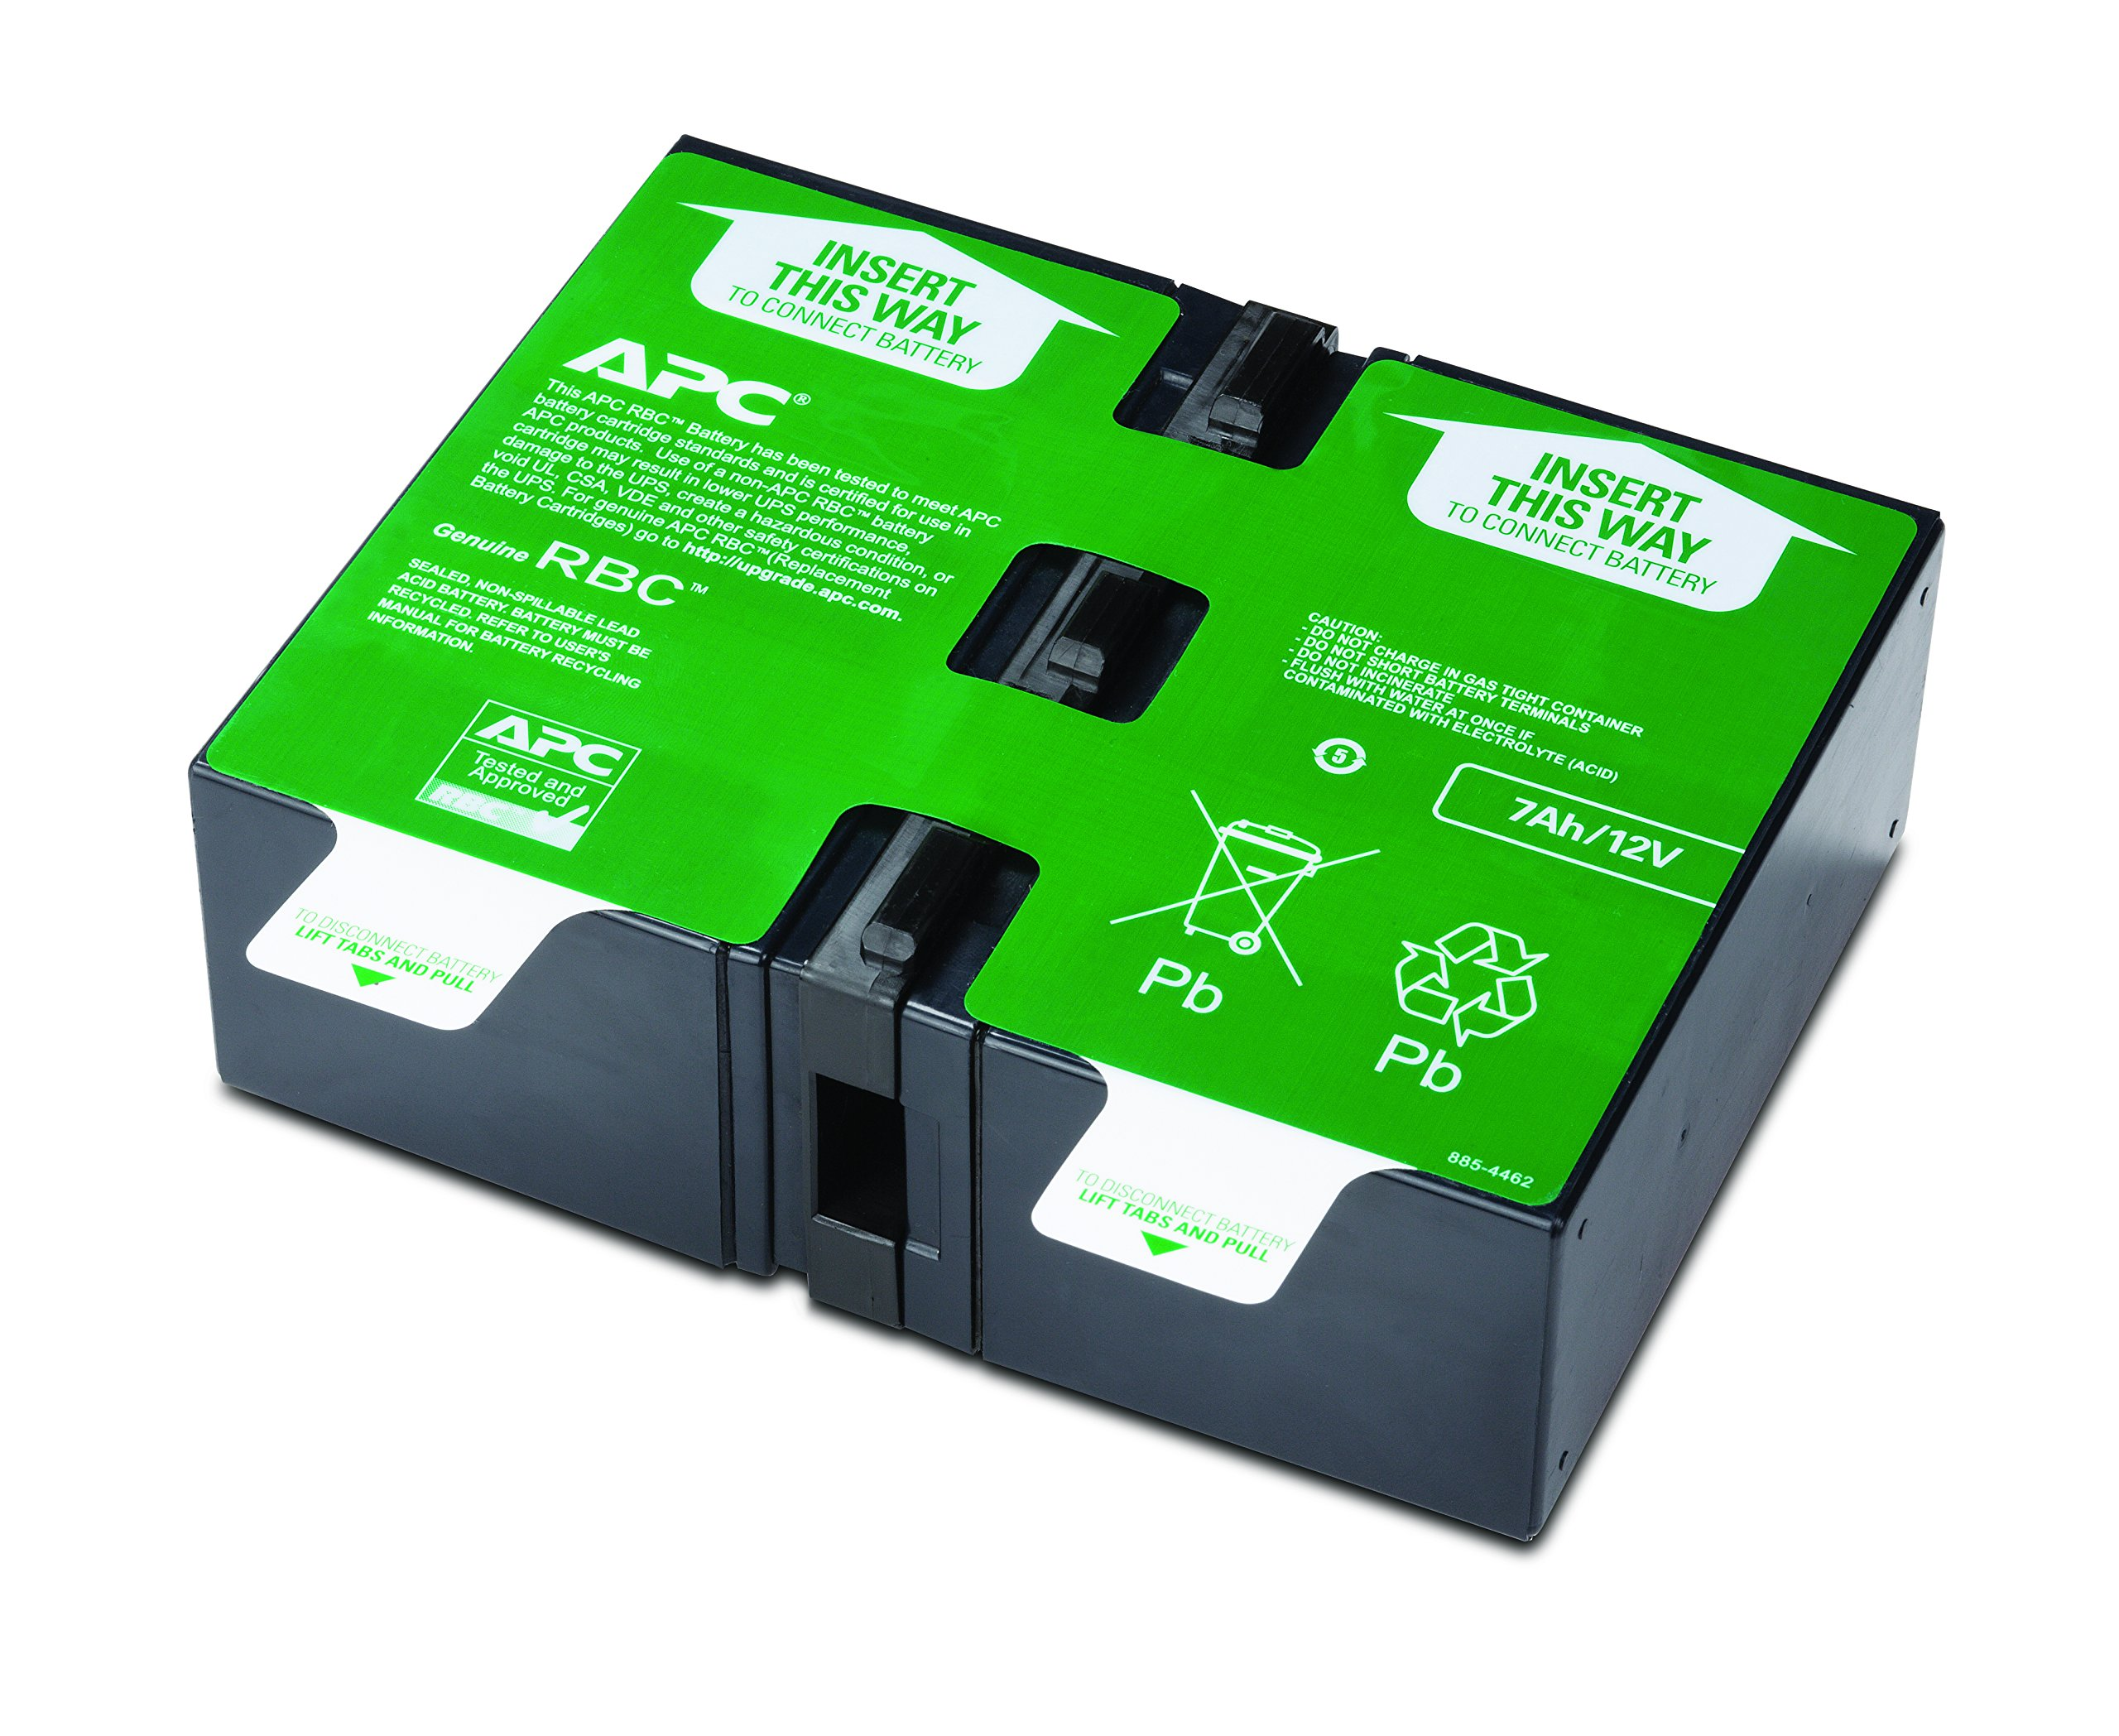 APC UPS Replacement Battery Cartridge for APC UPS Model BR1000G and select others (APCRBC123) by APC